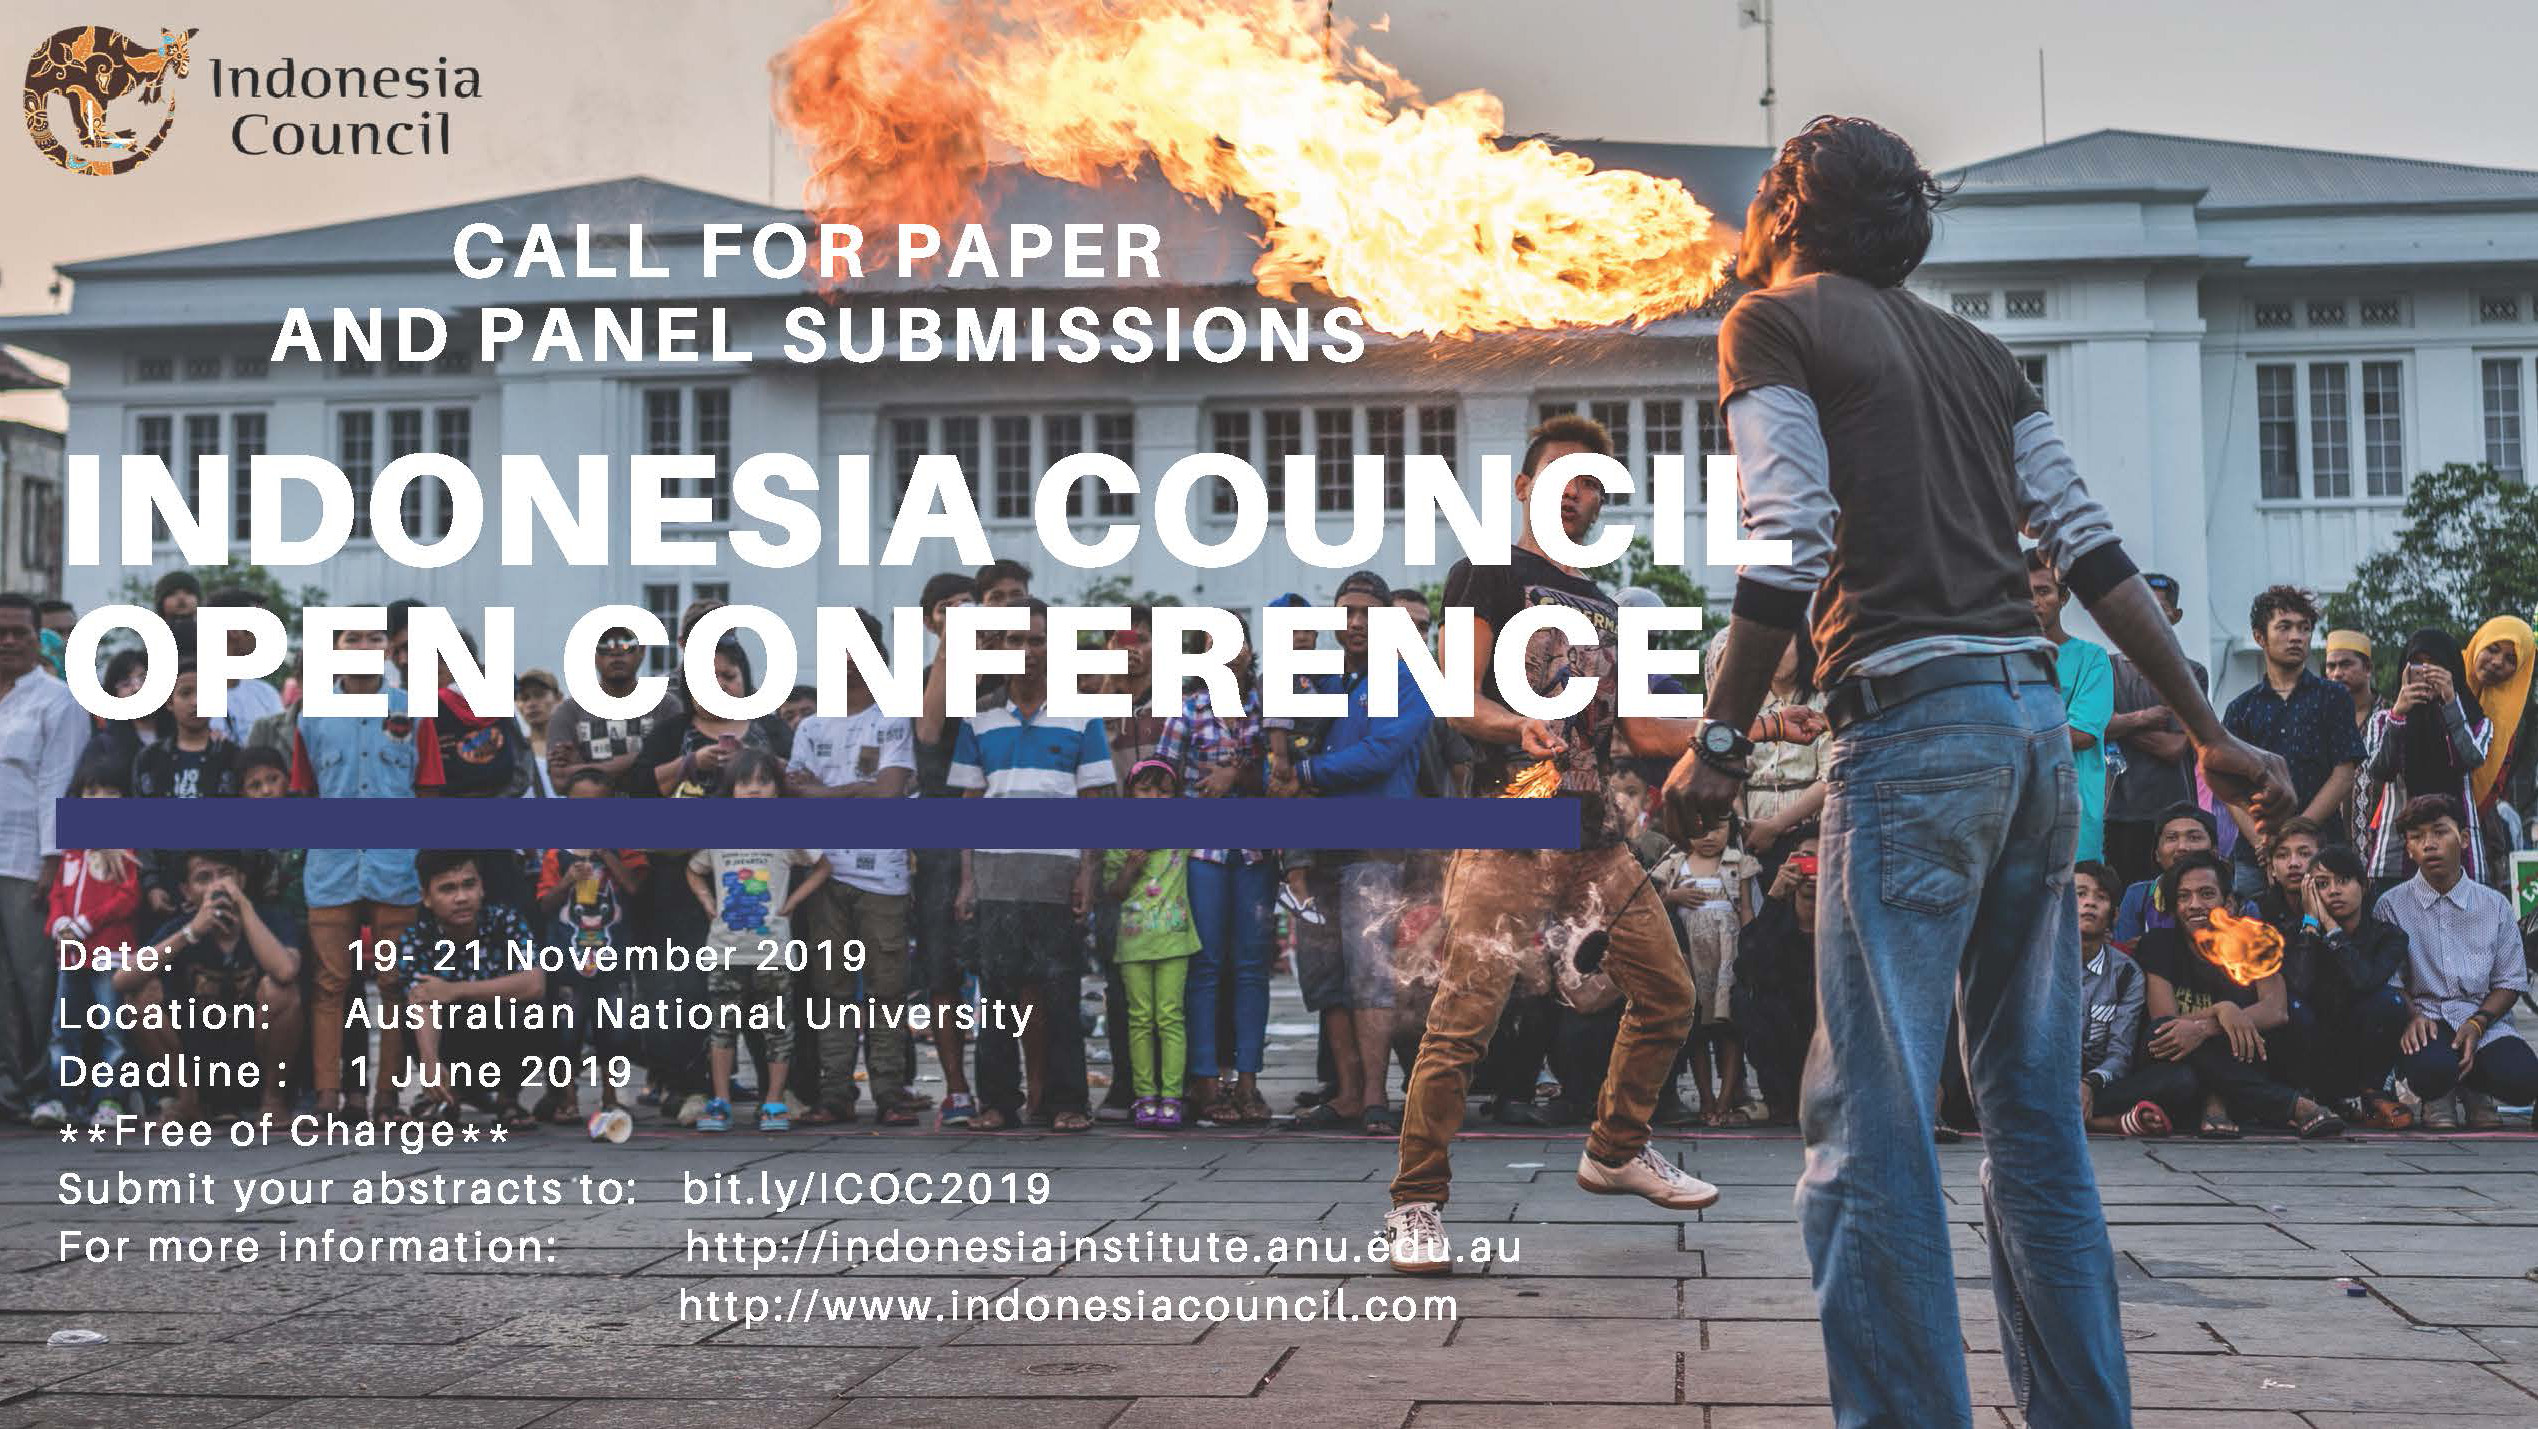 Indonesia Council Open Conference: Call for Panels and Papers